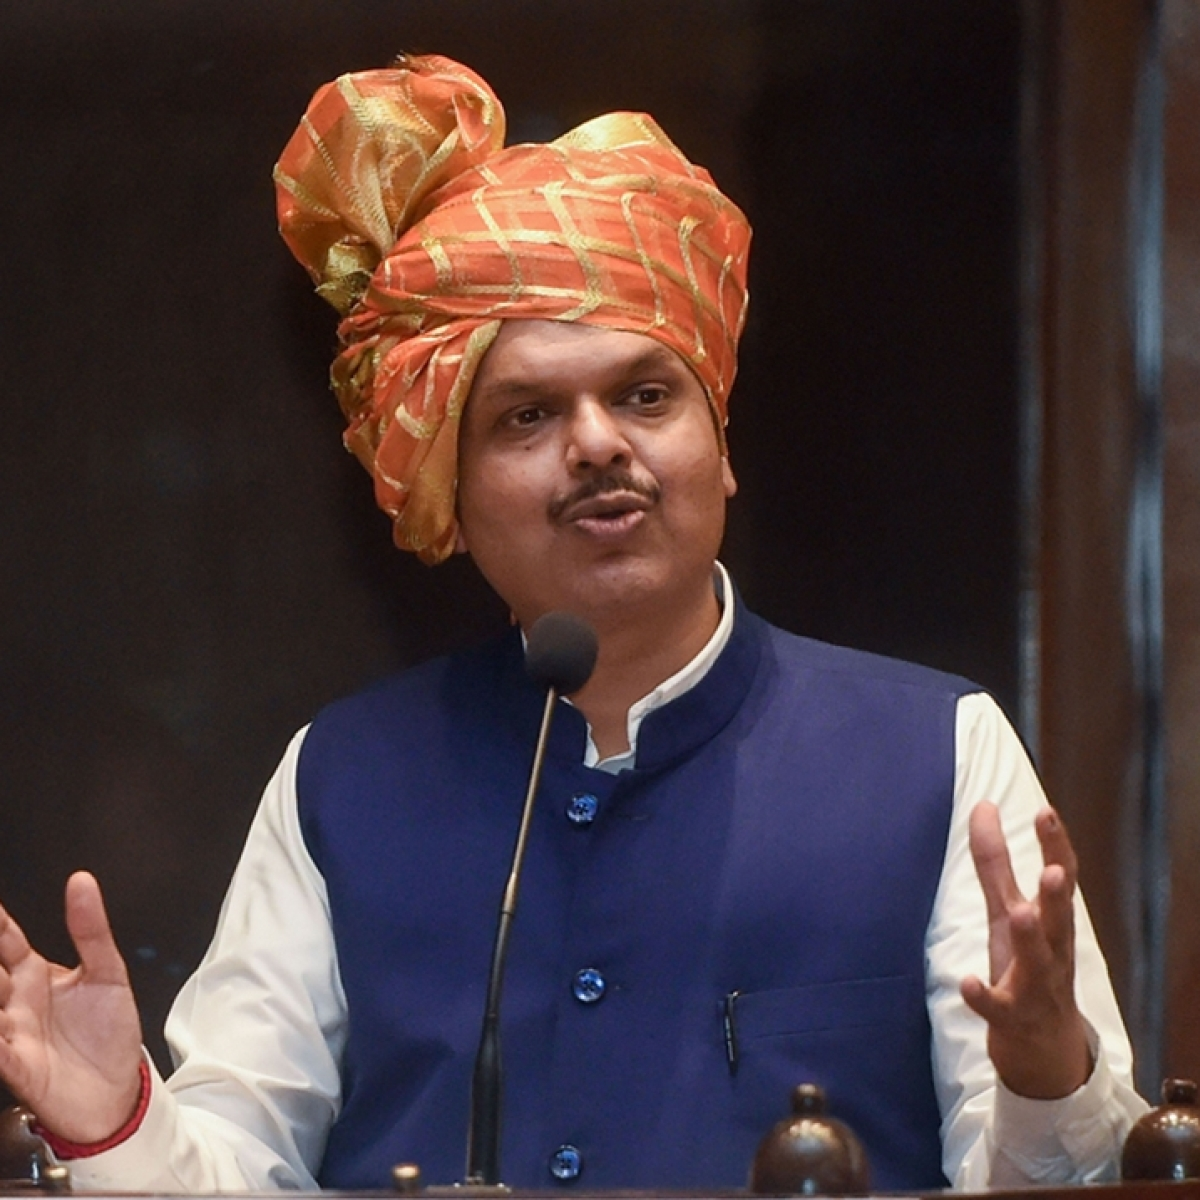 BJP may drop Devendra Fadnavis and appoint someone who is amenable sharing CM's post with the Shiv Sena